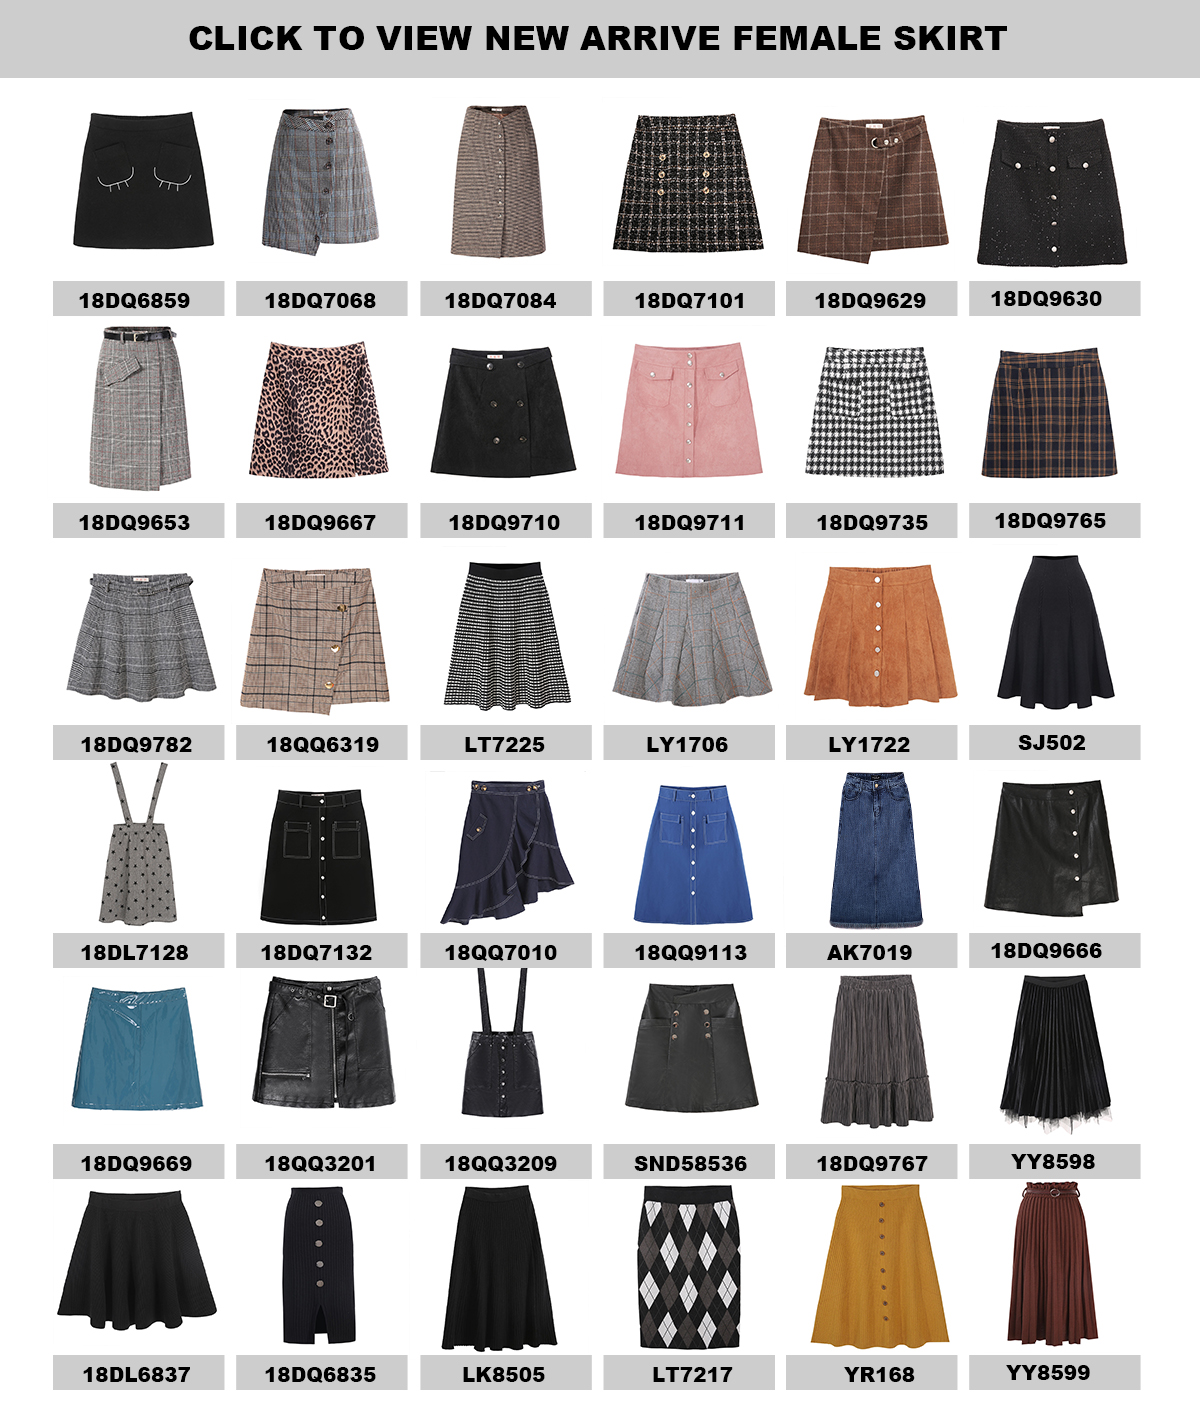 (SND58536) new design women clothing fashion girl PU leather skirt spring street wear Leisure skirts